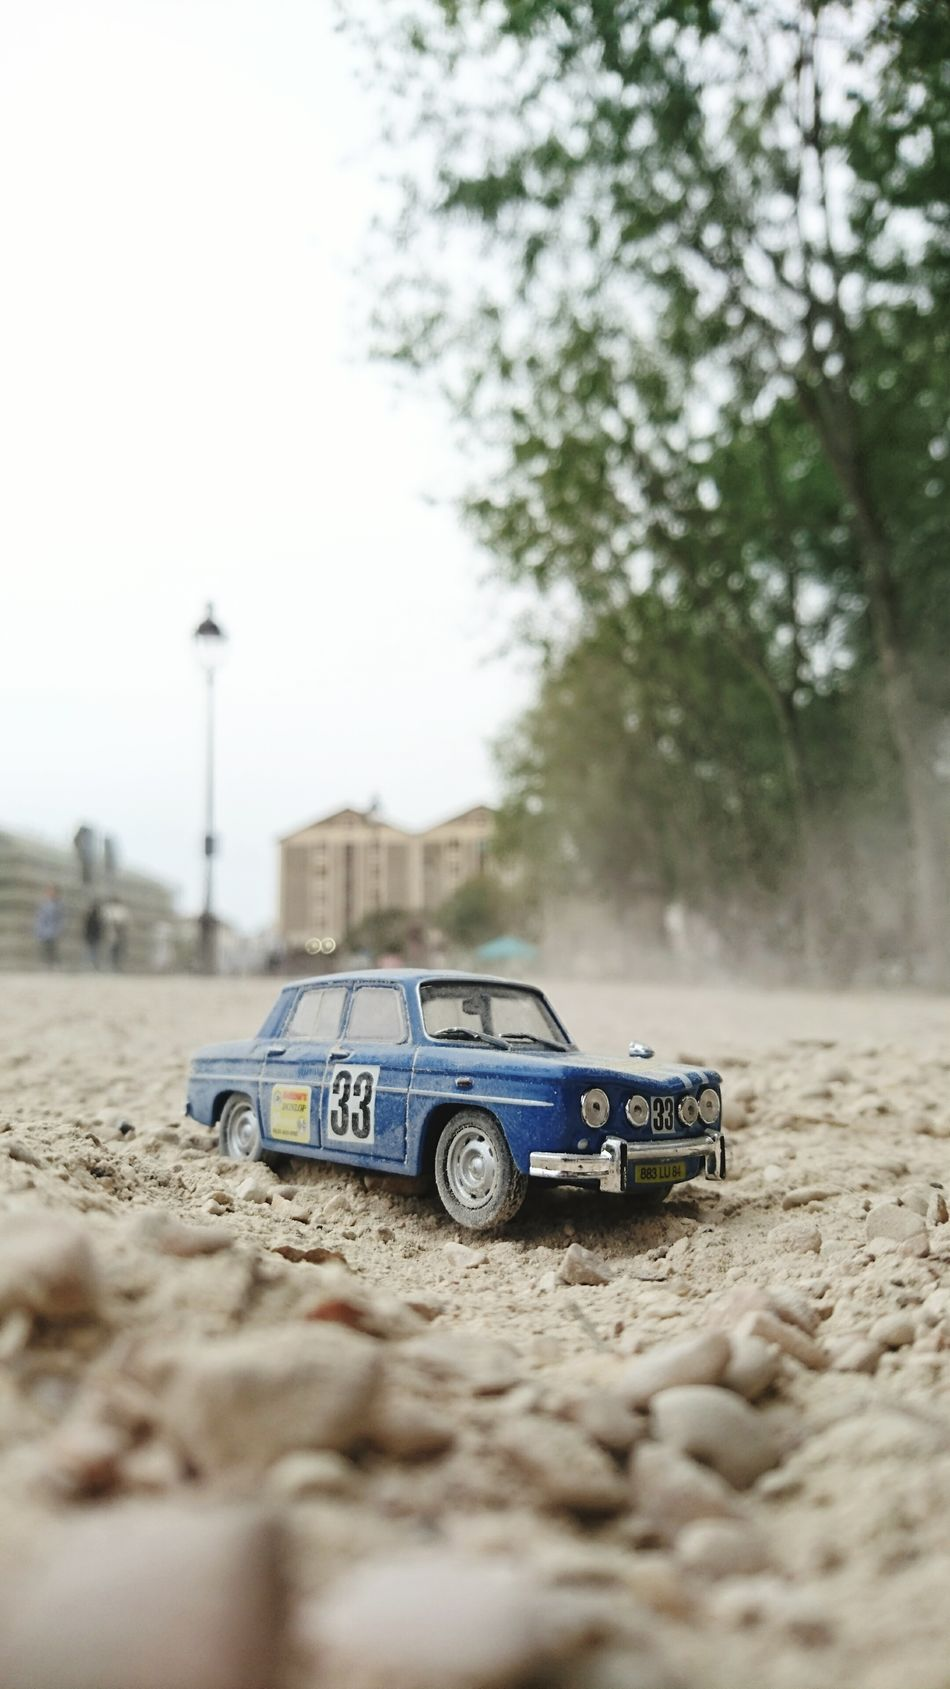 Renault8 Renault8Gordini Gordini Renault Rally Street Road Surface Level Transportation Single Object Car Selective Focus Land Vehicle Outdoors Day Toy Car Vehicle Solitude The Way Forward Hobbies Long